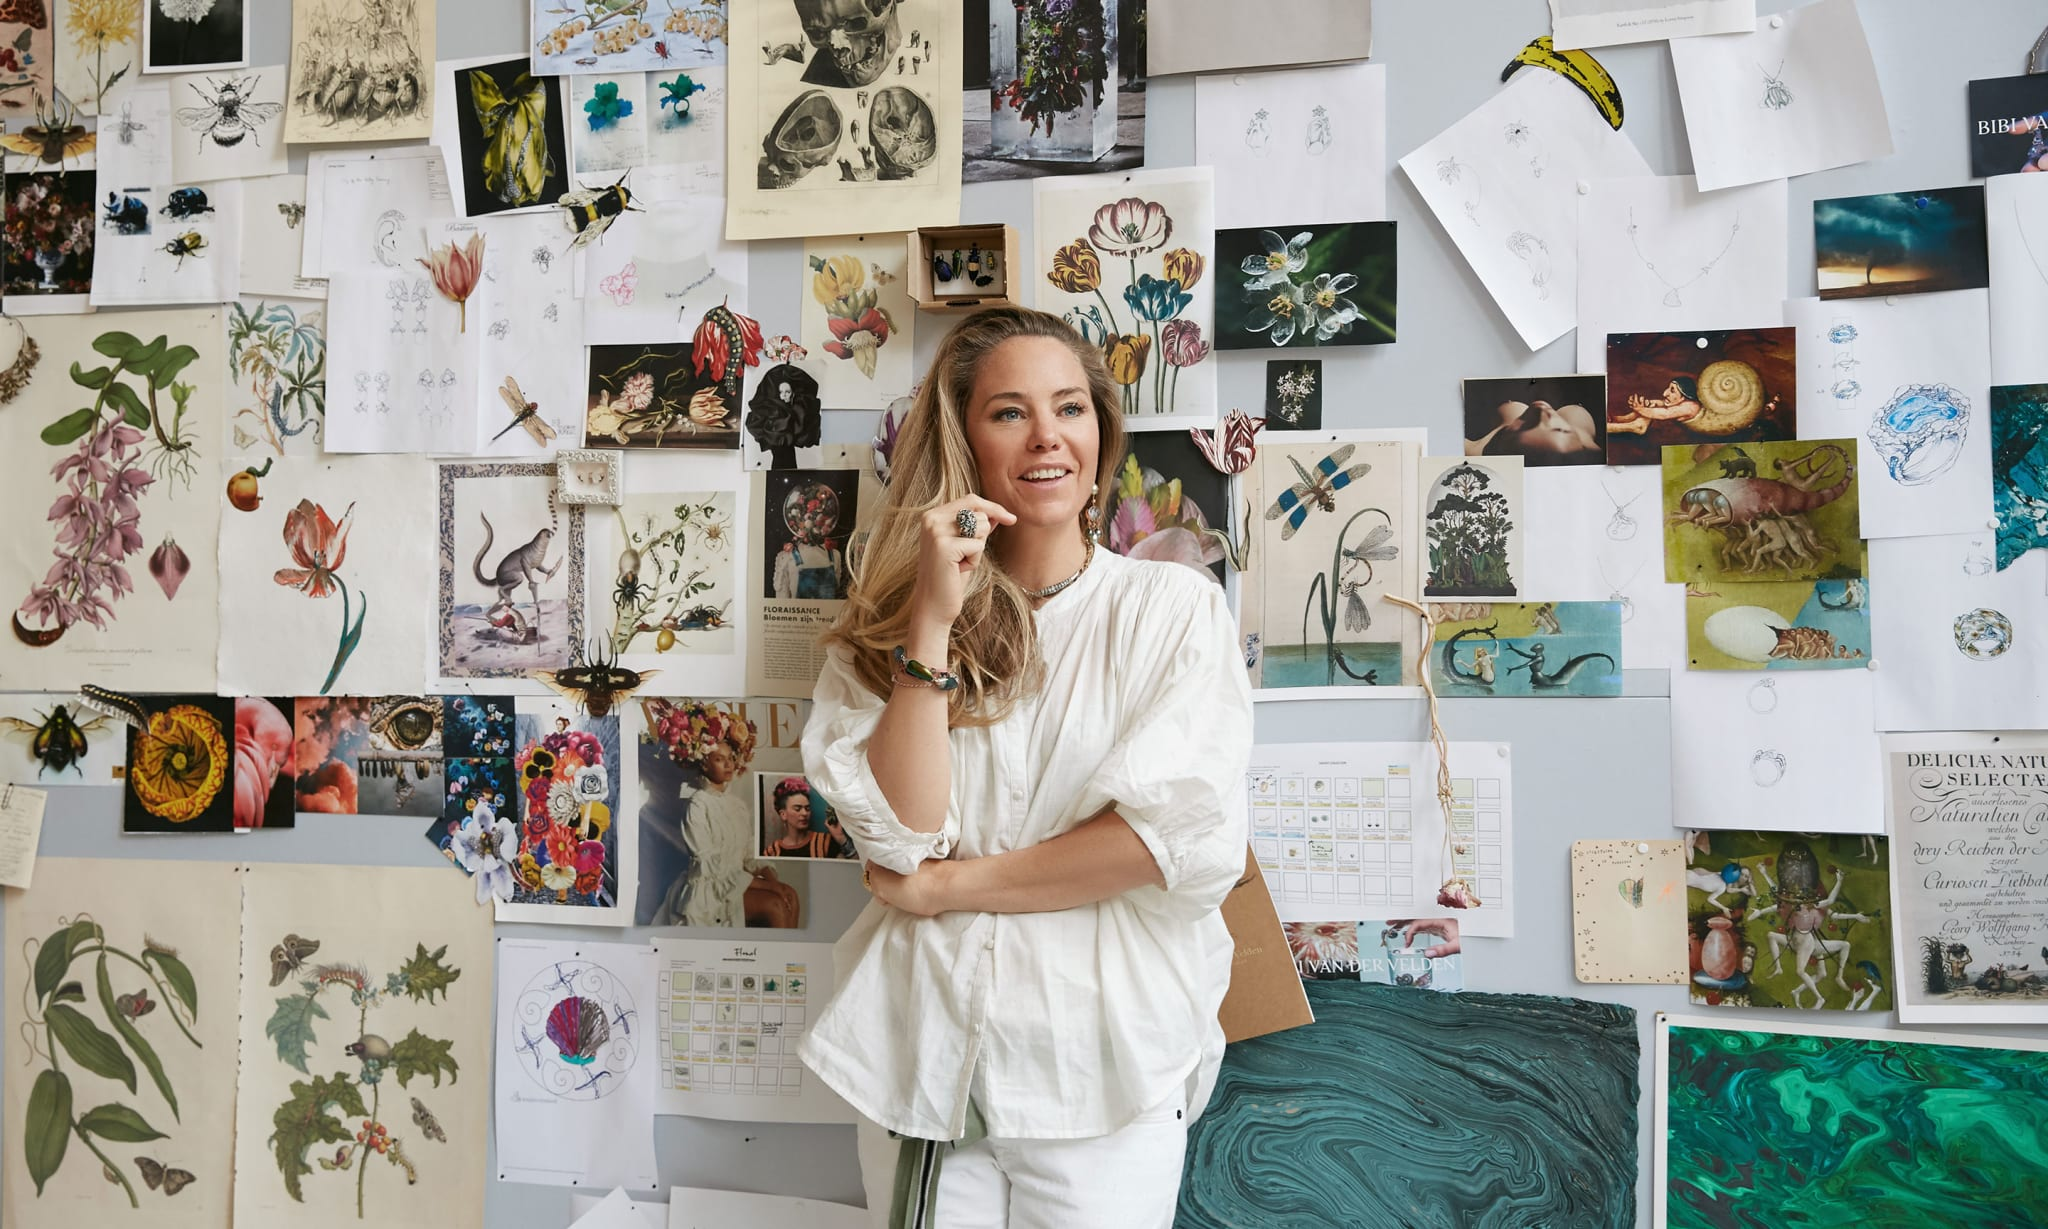 A woman standing in front of a mood board.